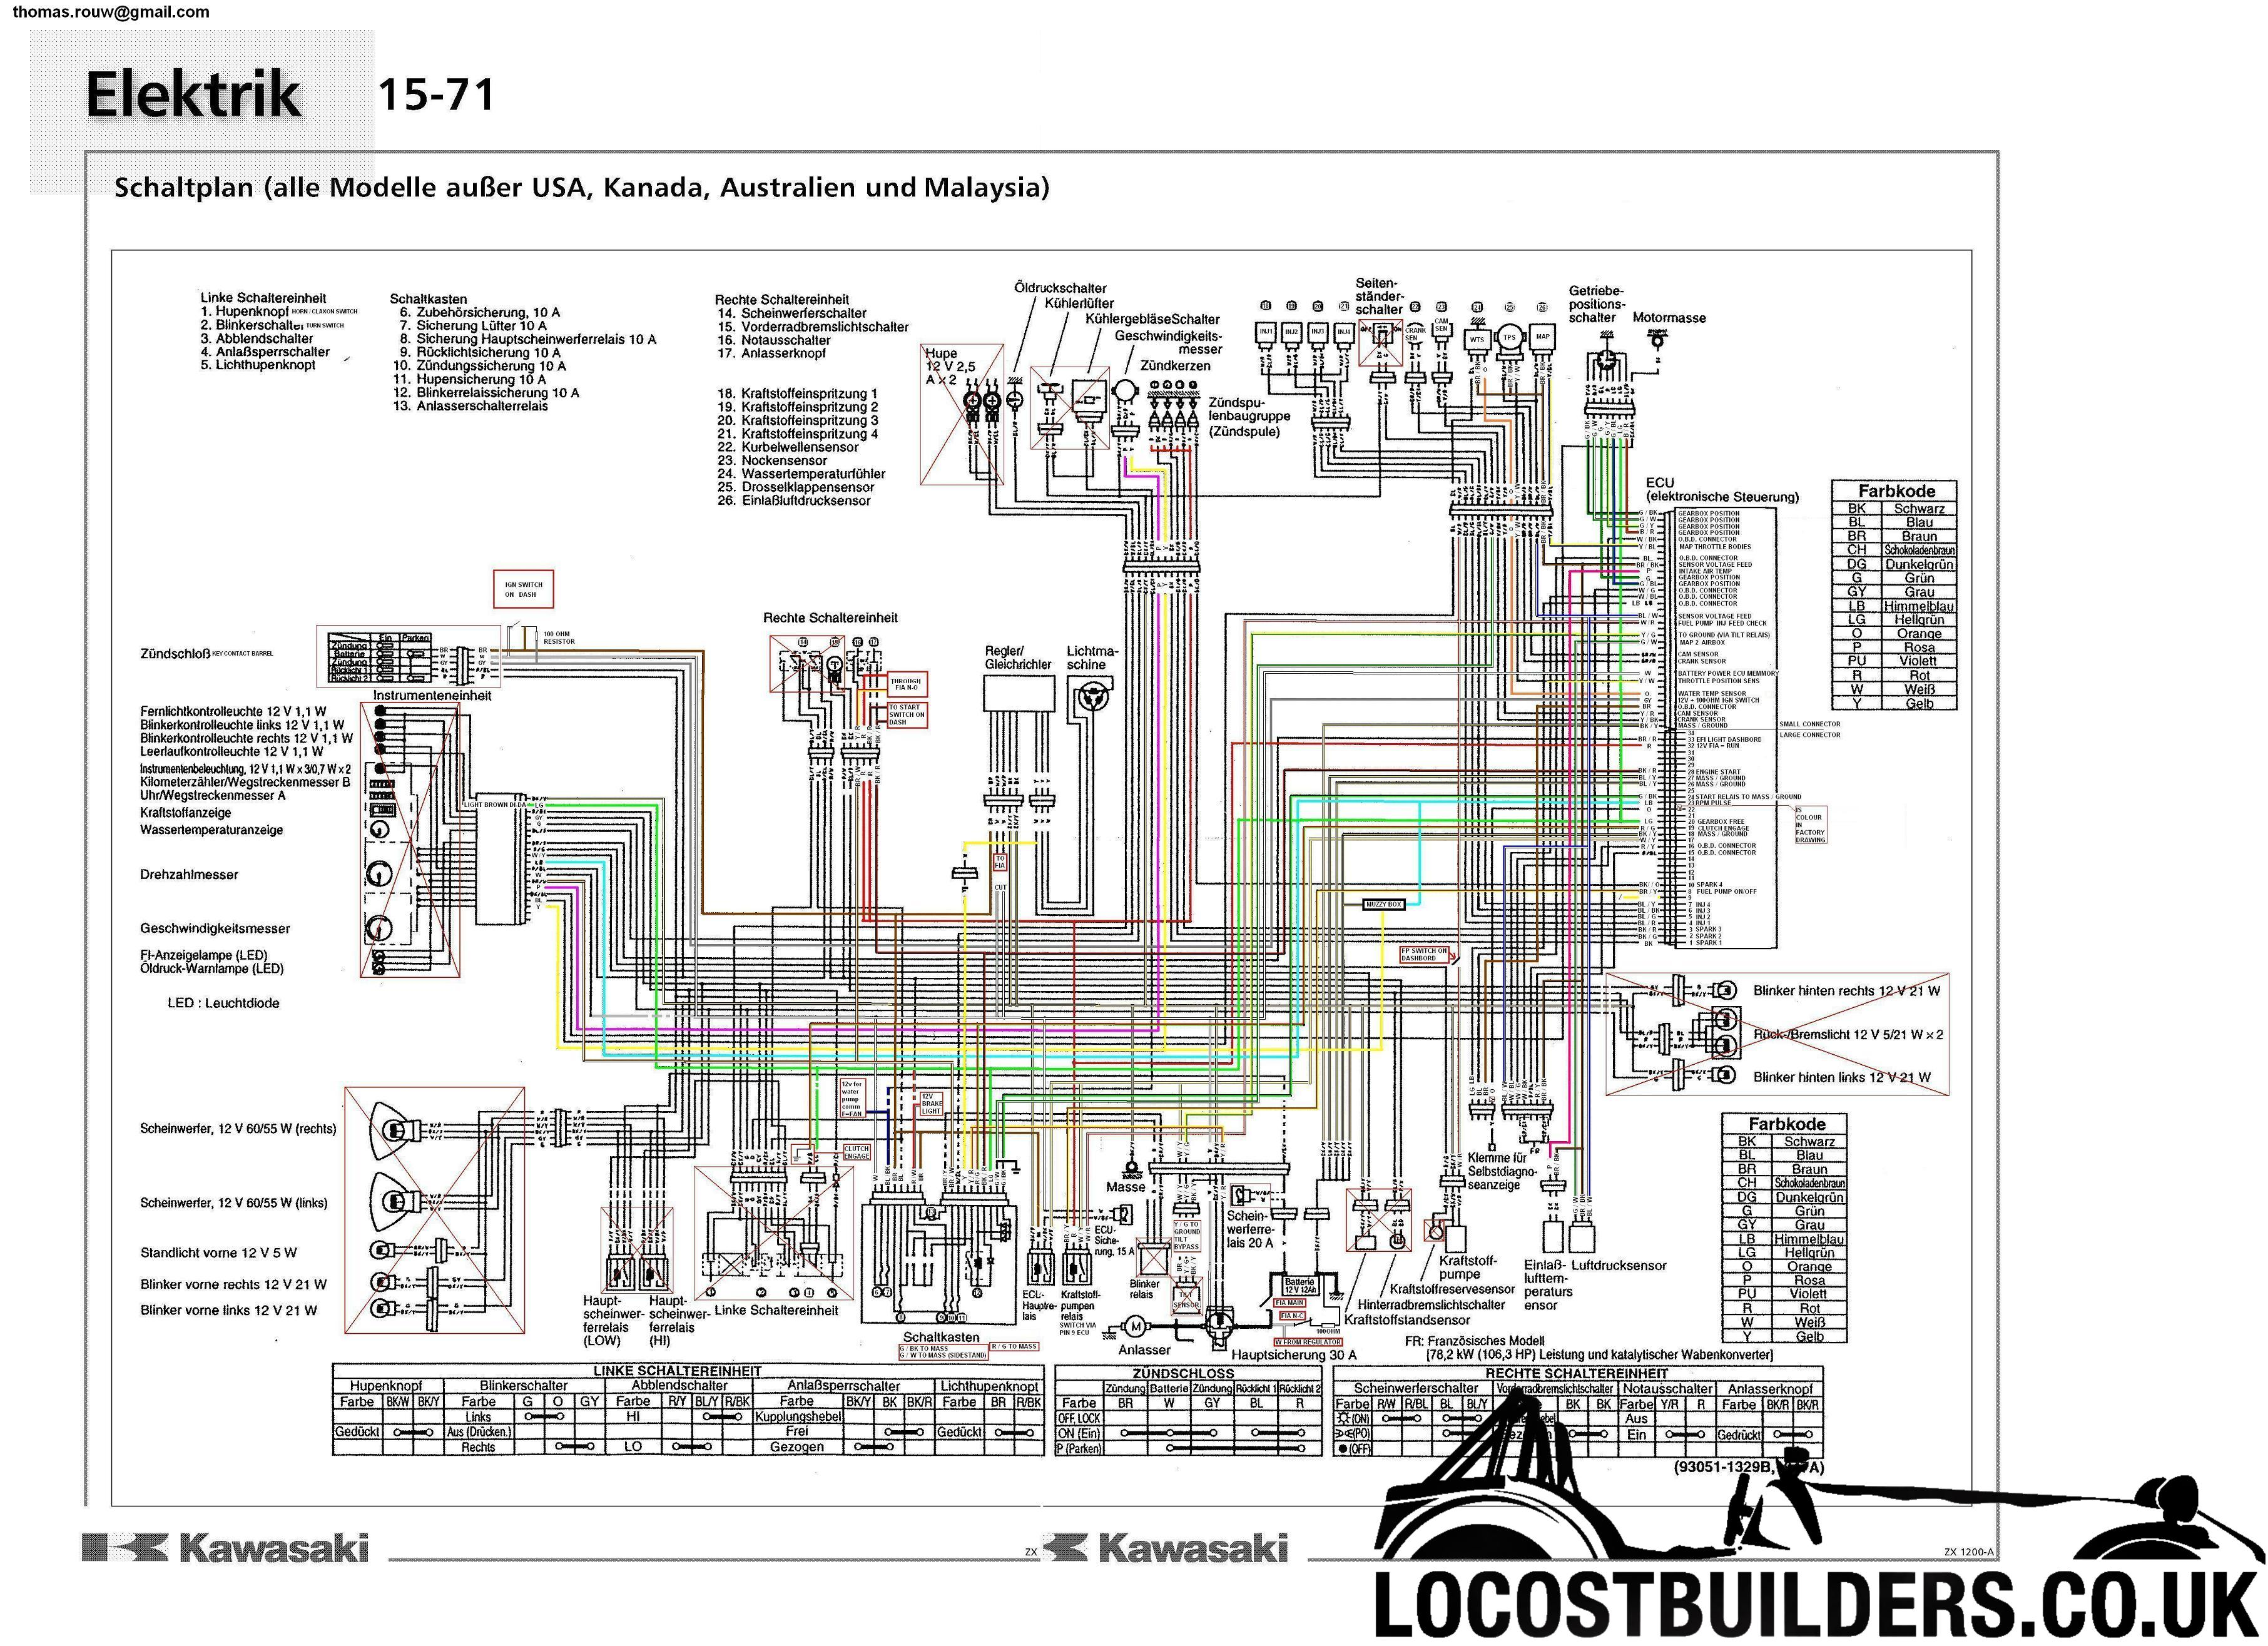 Zx12r Wiring Diagram - Diagram Design Sources device-petty -  device-petty.paoloemartina.it | Wiring Schematics 2000 Kawasaki Zx 12r |  | diagram database - paoloemartina.it